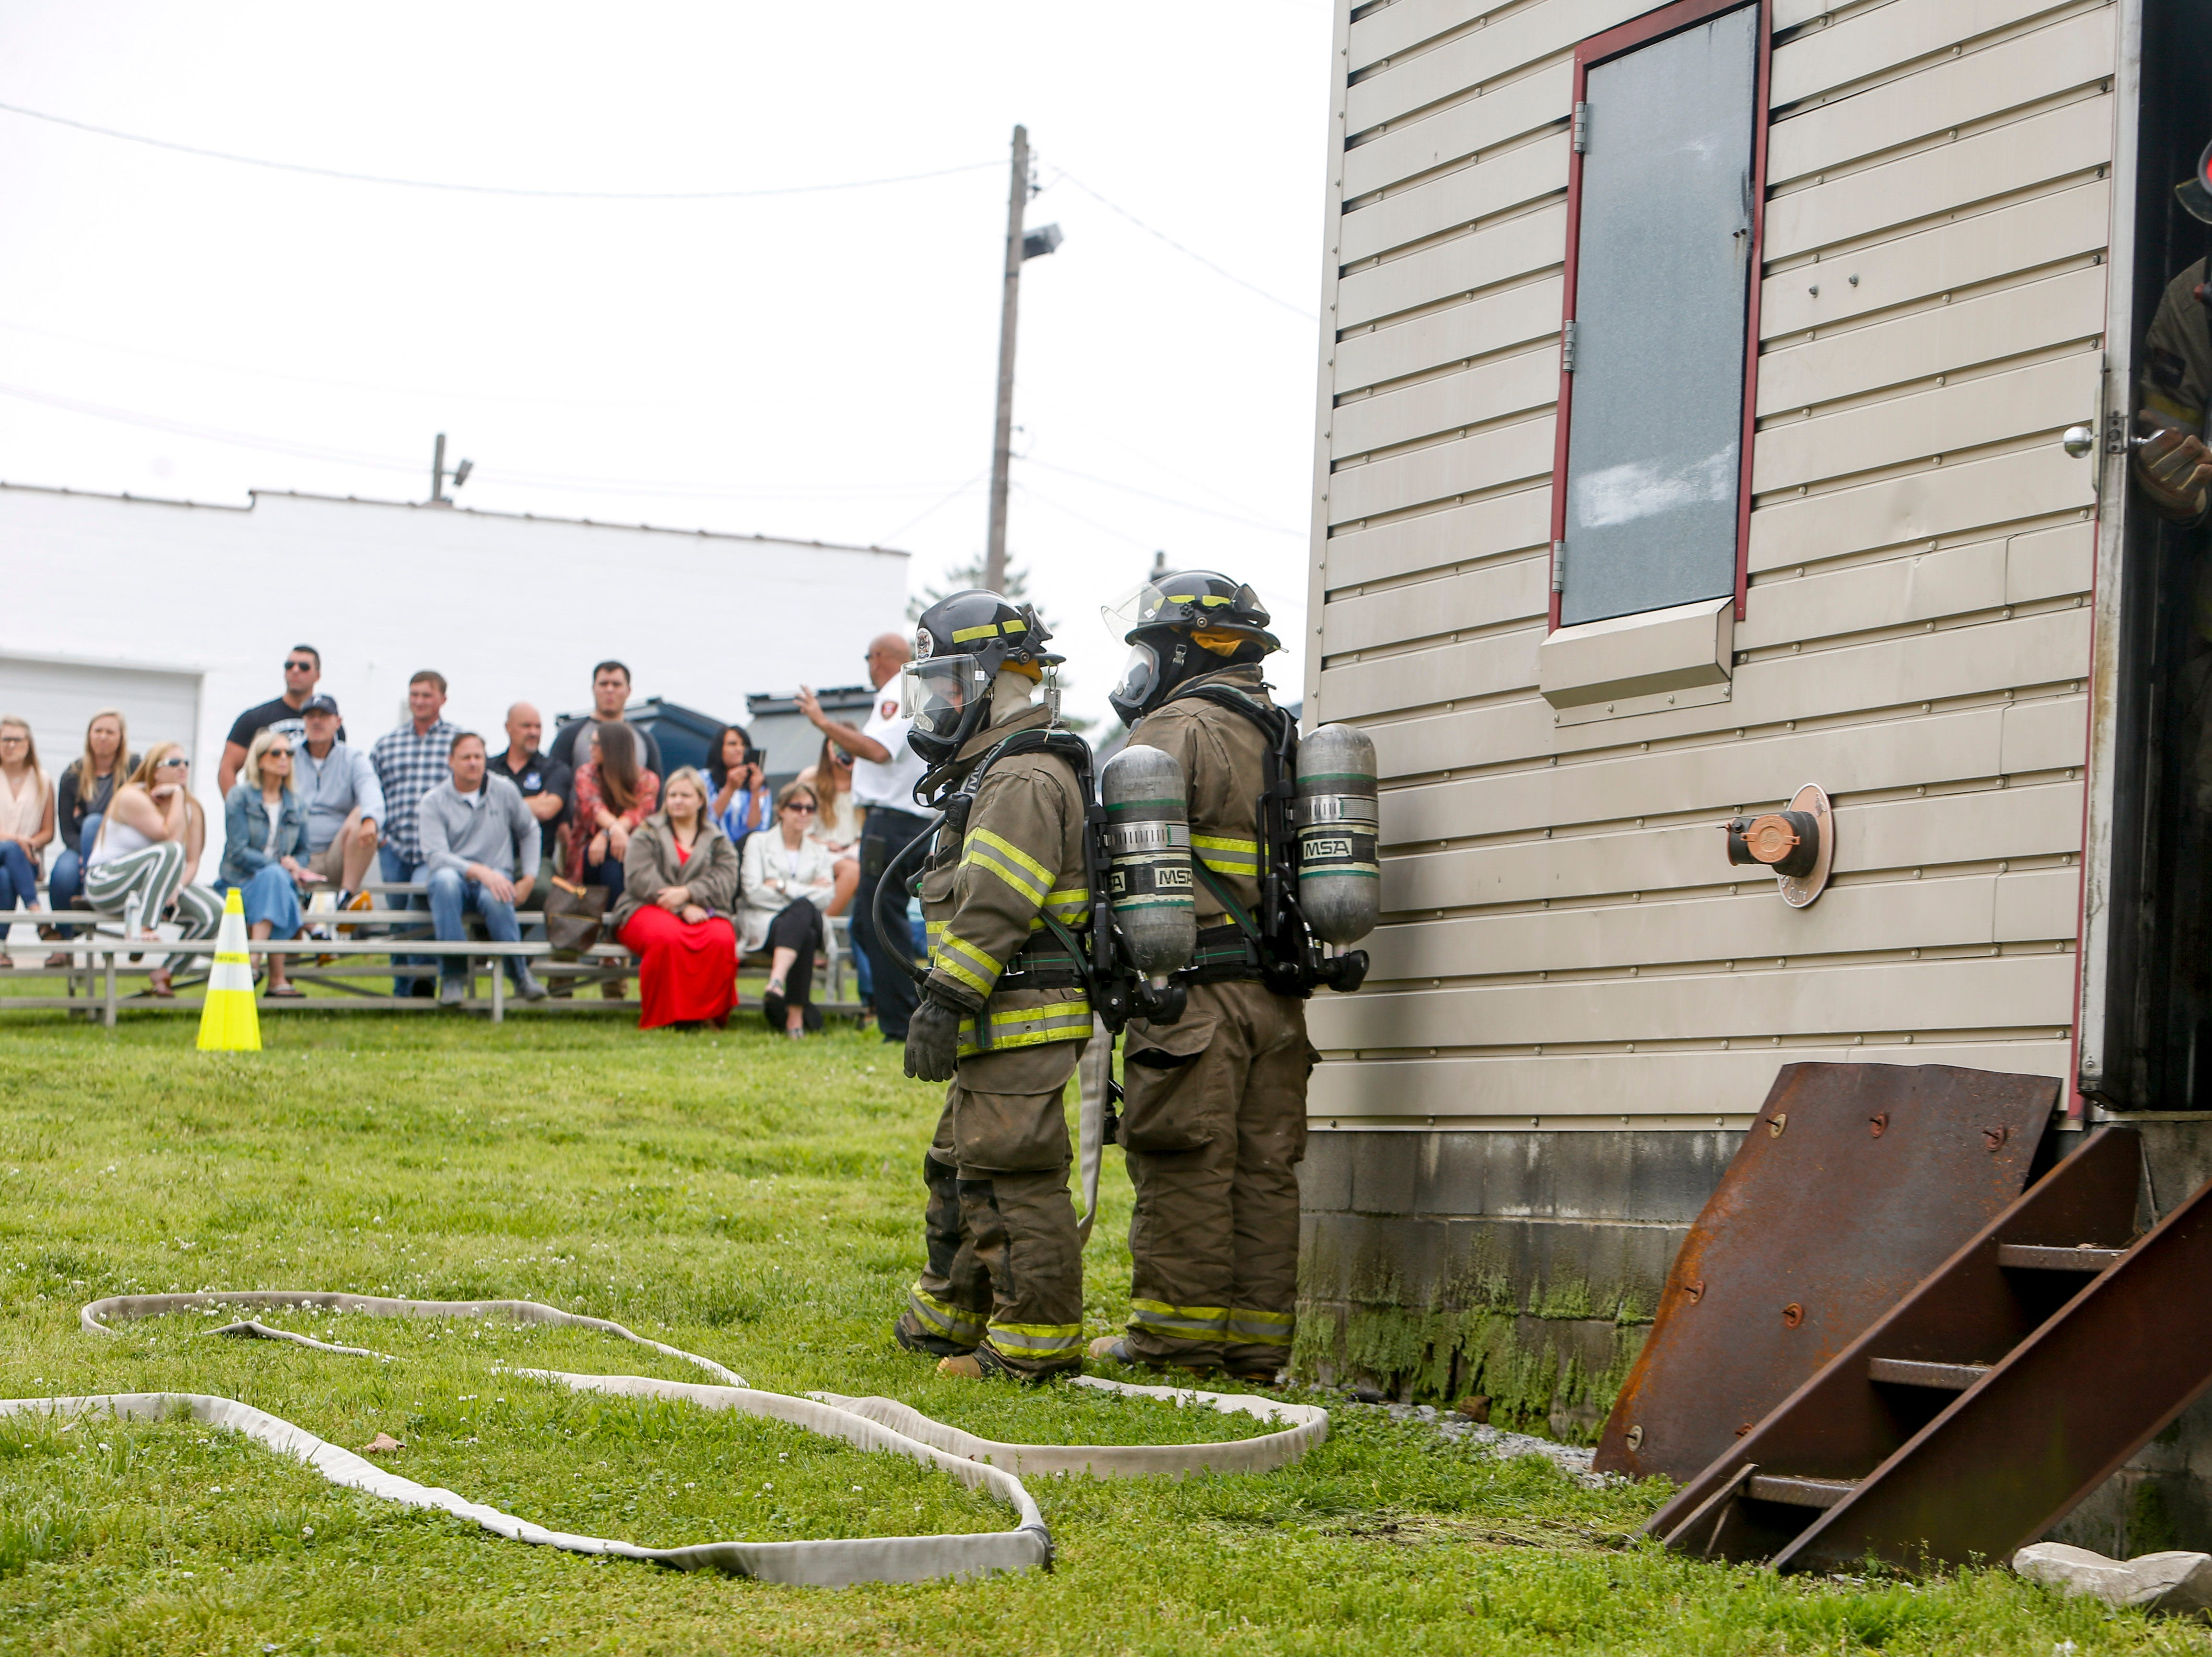 Captain Butch McCurdy looks out the side door of a burn building before a live fire drill for new recruits at Clarksville Fire Rescue in Clarksville, Tenn., on Friday, May 10, 2019.